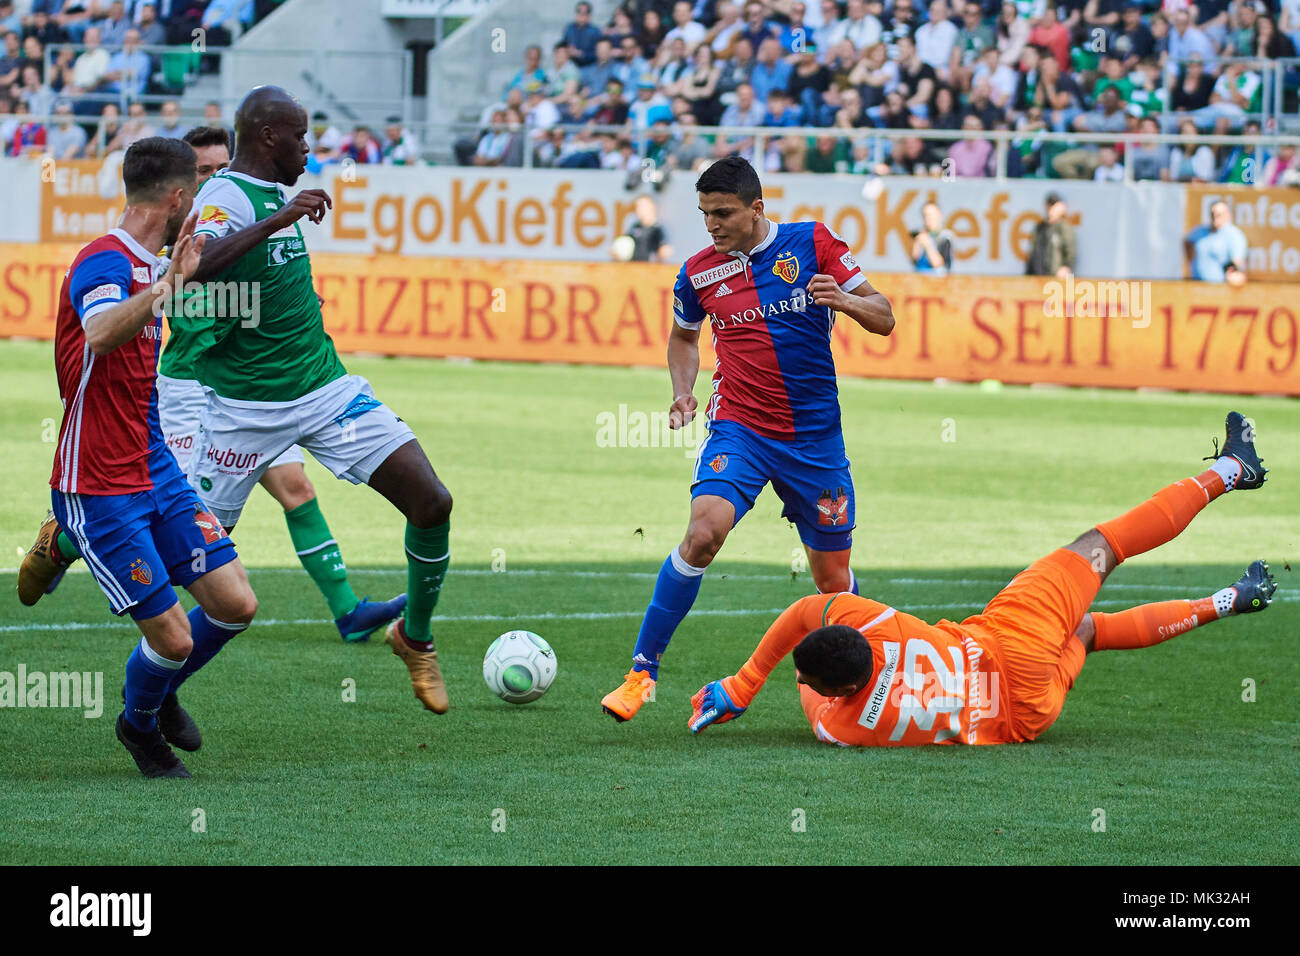 St. Gallen, Switzerland. 6th May 2018. Dejan Stojanovic saves before Mohamed Elyounoussi during the Raiffeisen Super League Match FC St. Gallen 1879 vs. FC Basel. Credit: Rolf Simeon/Alamy Live News - Stock Image